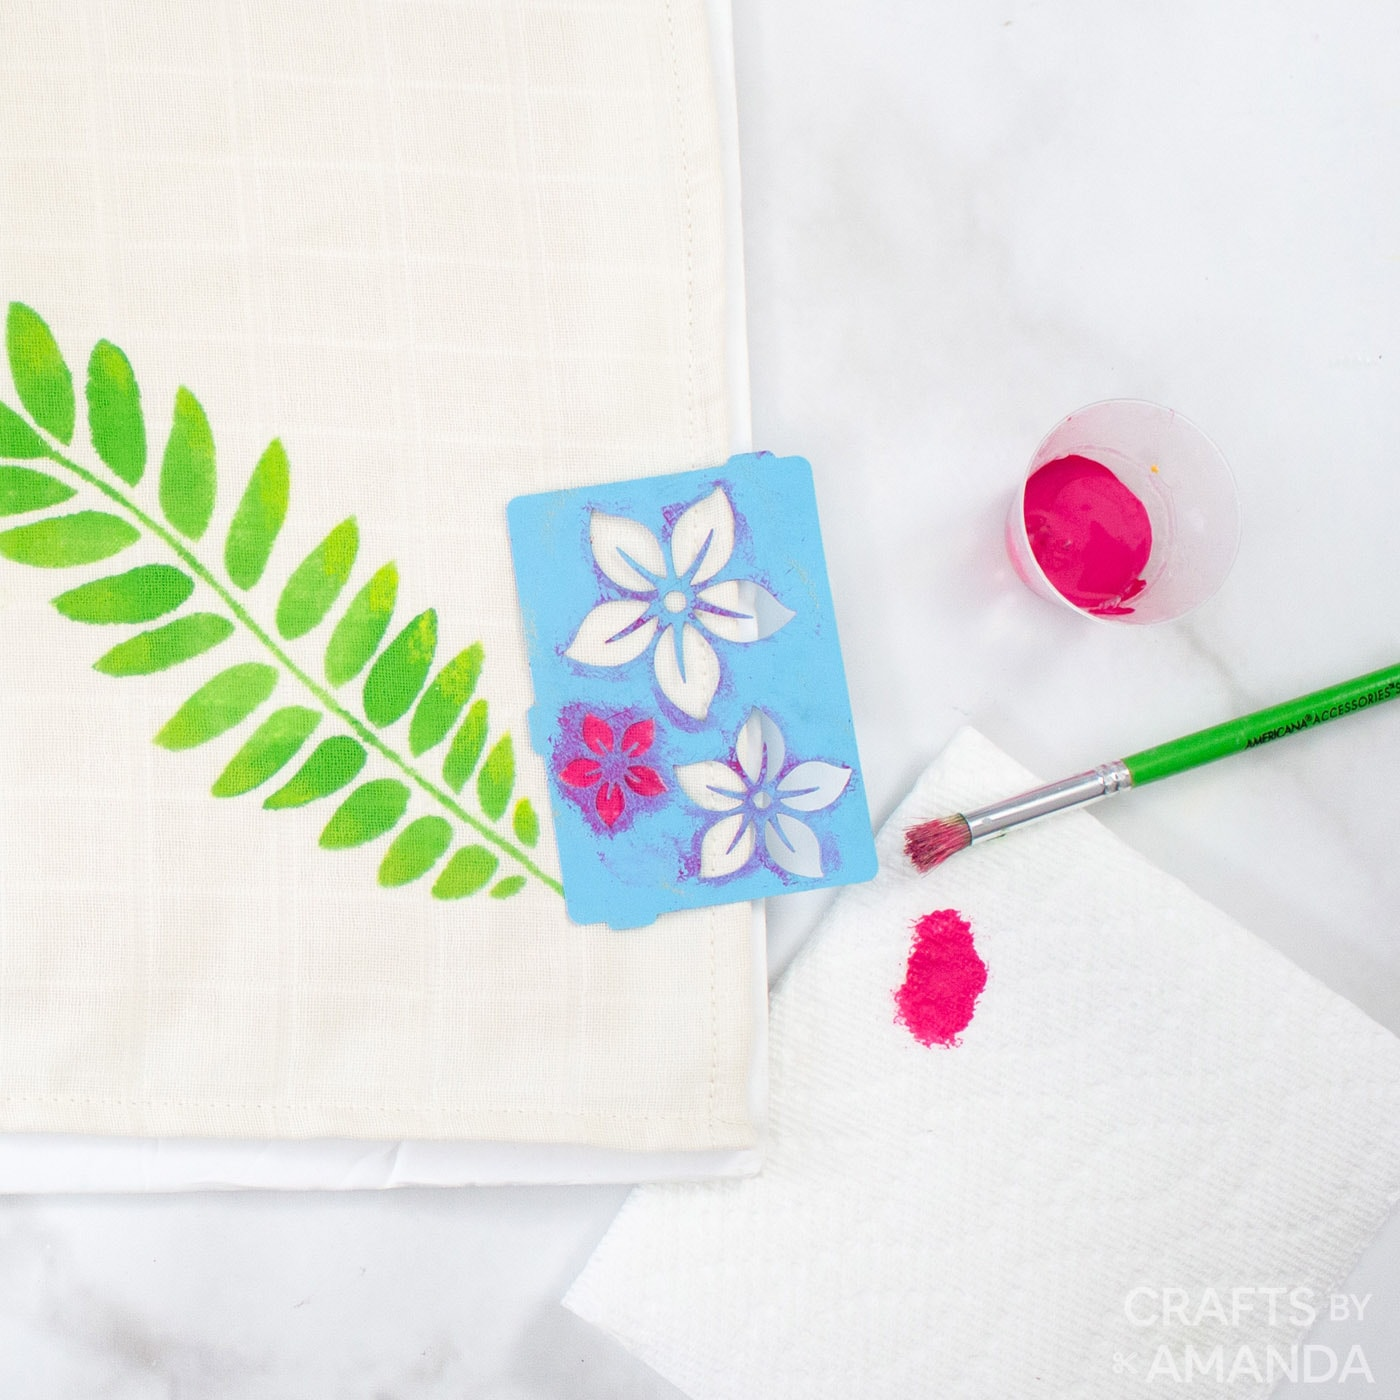 stenciling bright pink flowers onto towel